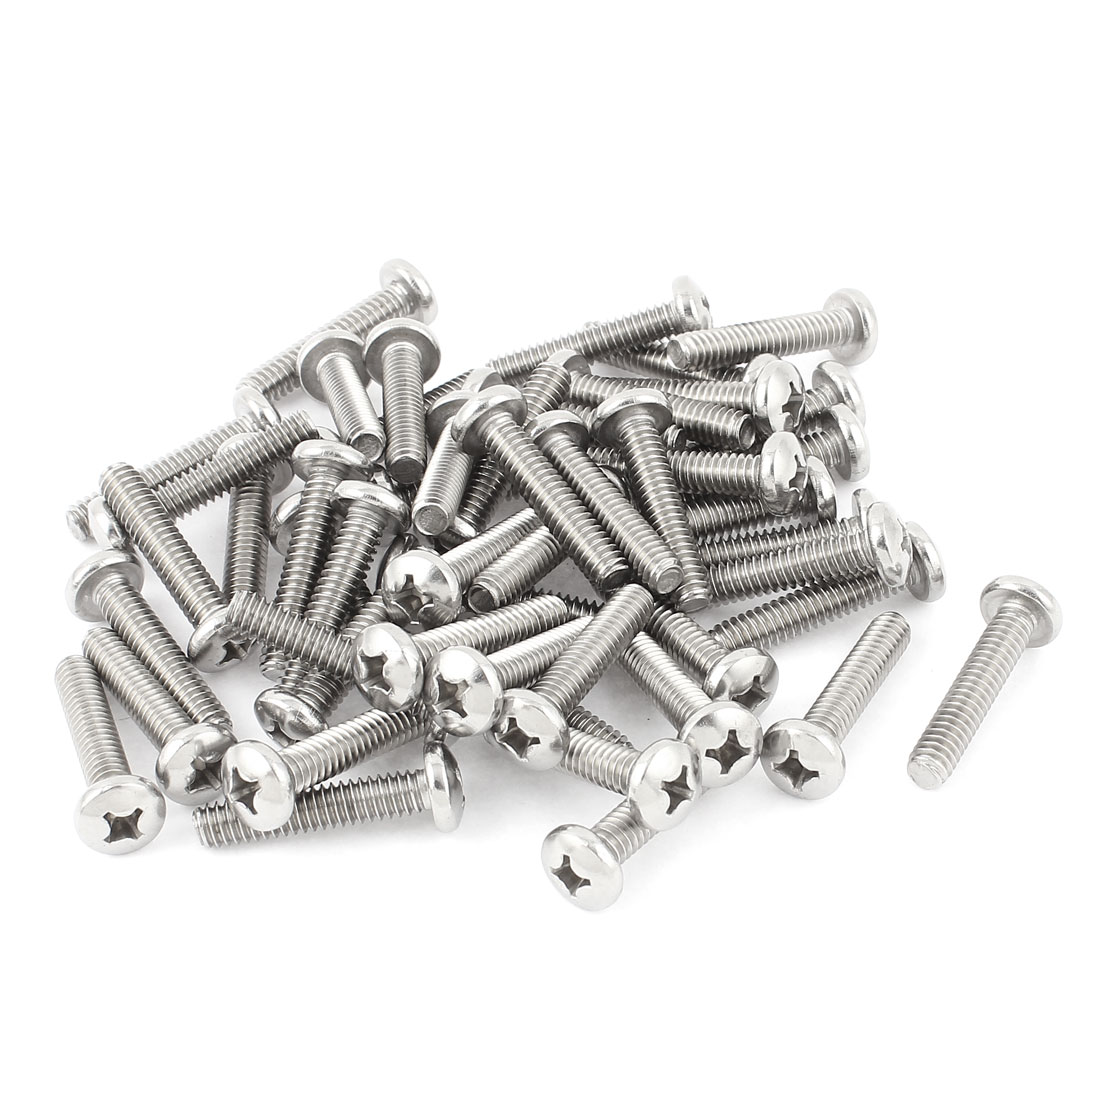 "36mm Long 1/4""x20x1-1/4"" Stainless Steel Phillips Cross Head Screws Bolts 50 Pcs"